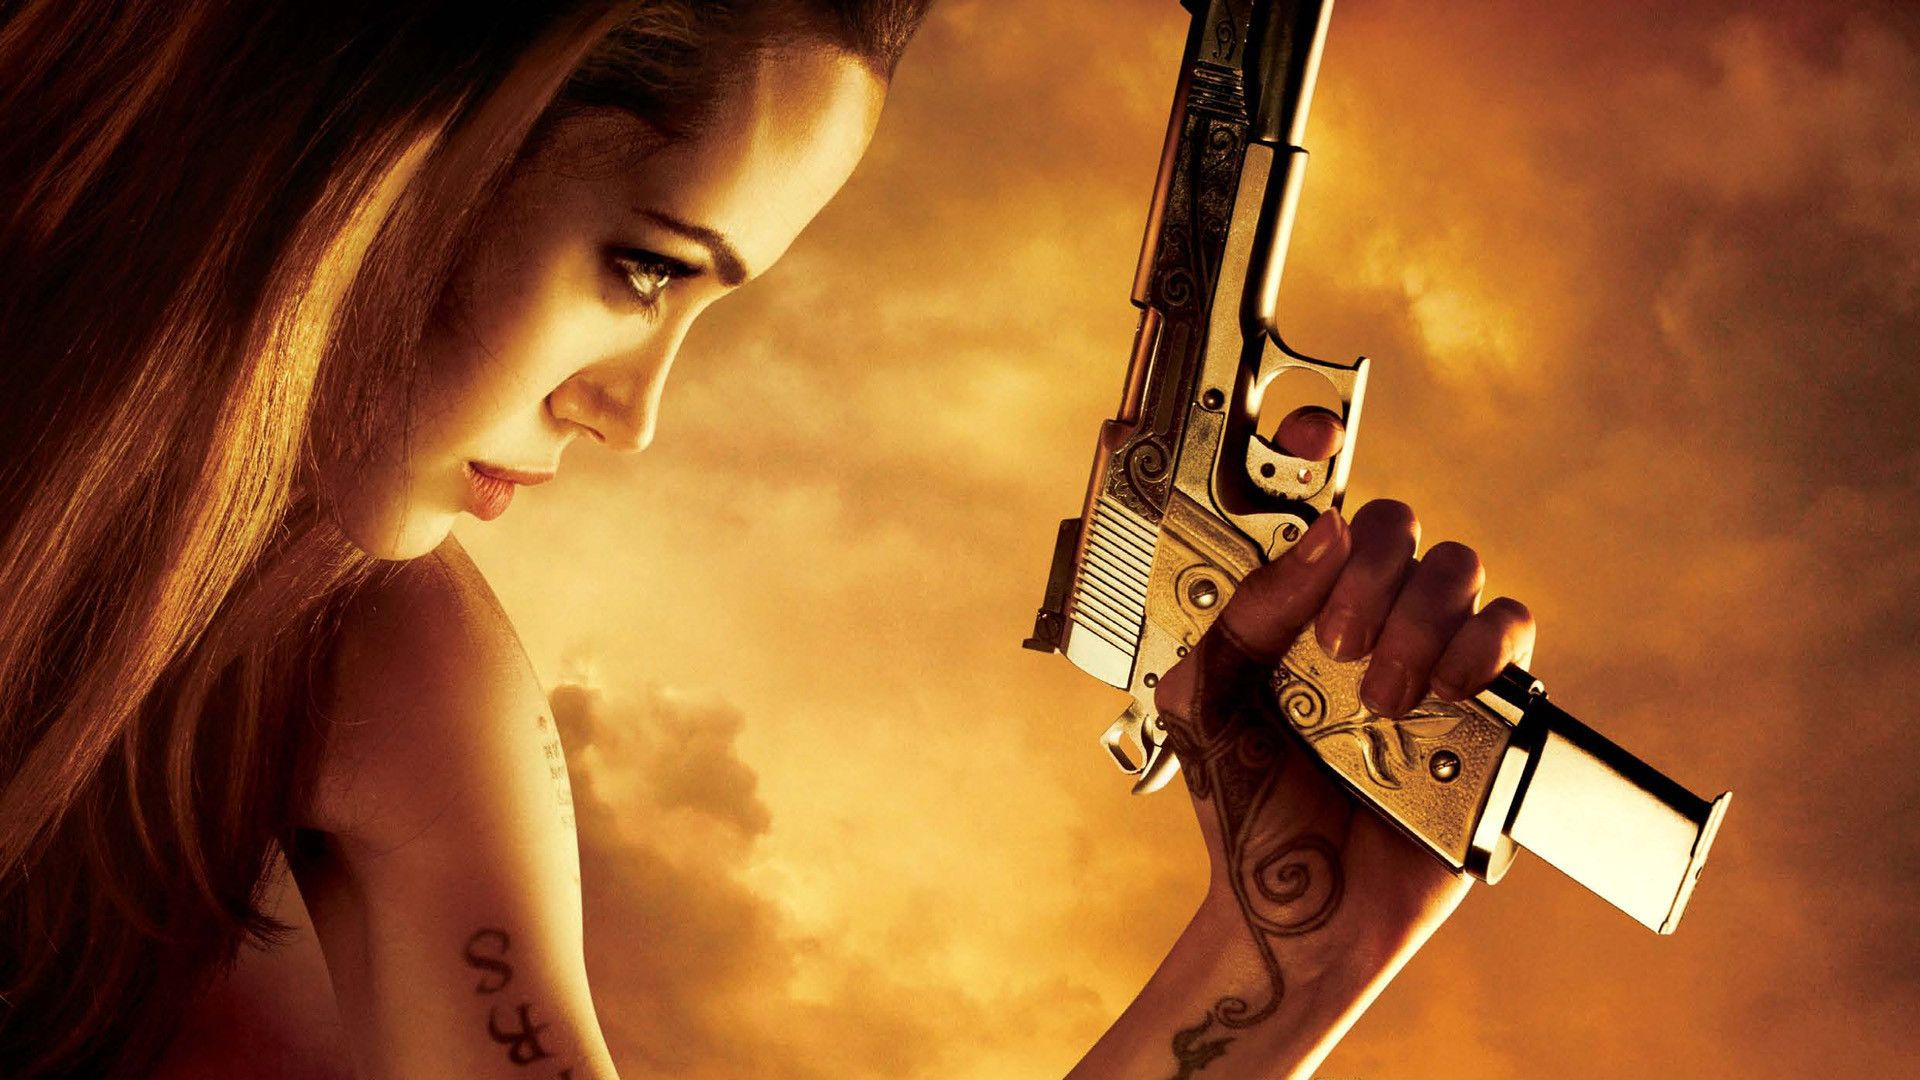 Download Torrent Wanted 2008 Http Moviestorrents Net Action Wanted 2008 Html Wanted Movie Angelina Jolie Movies Angelina Jolie